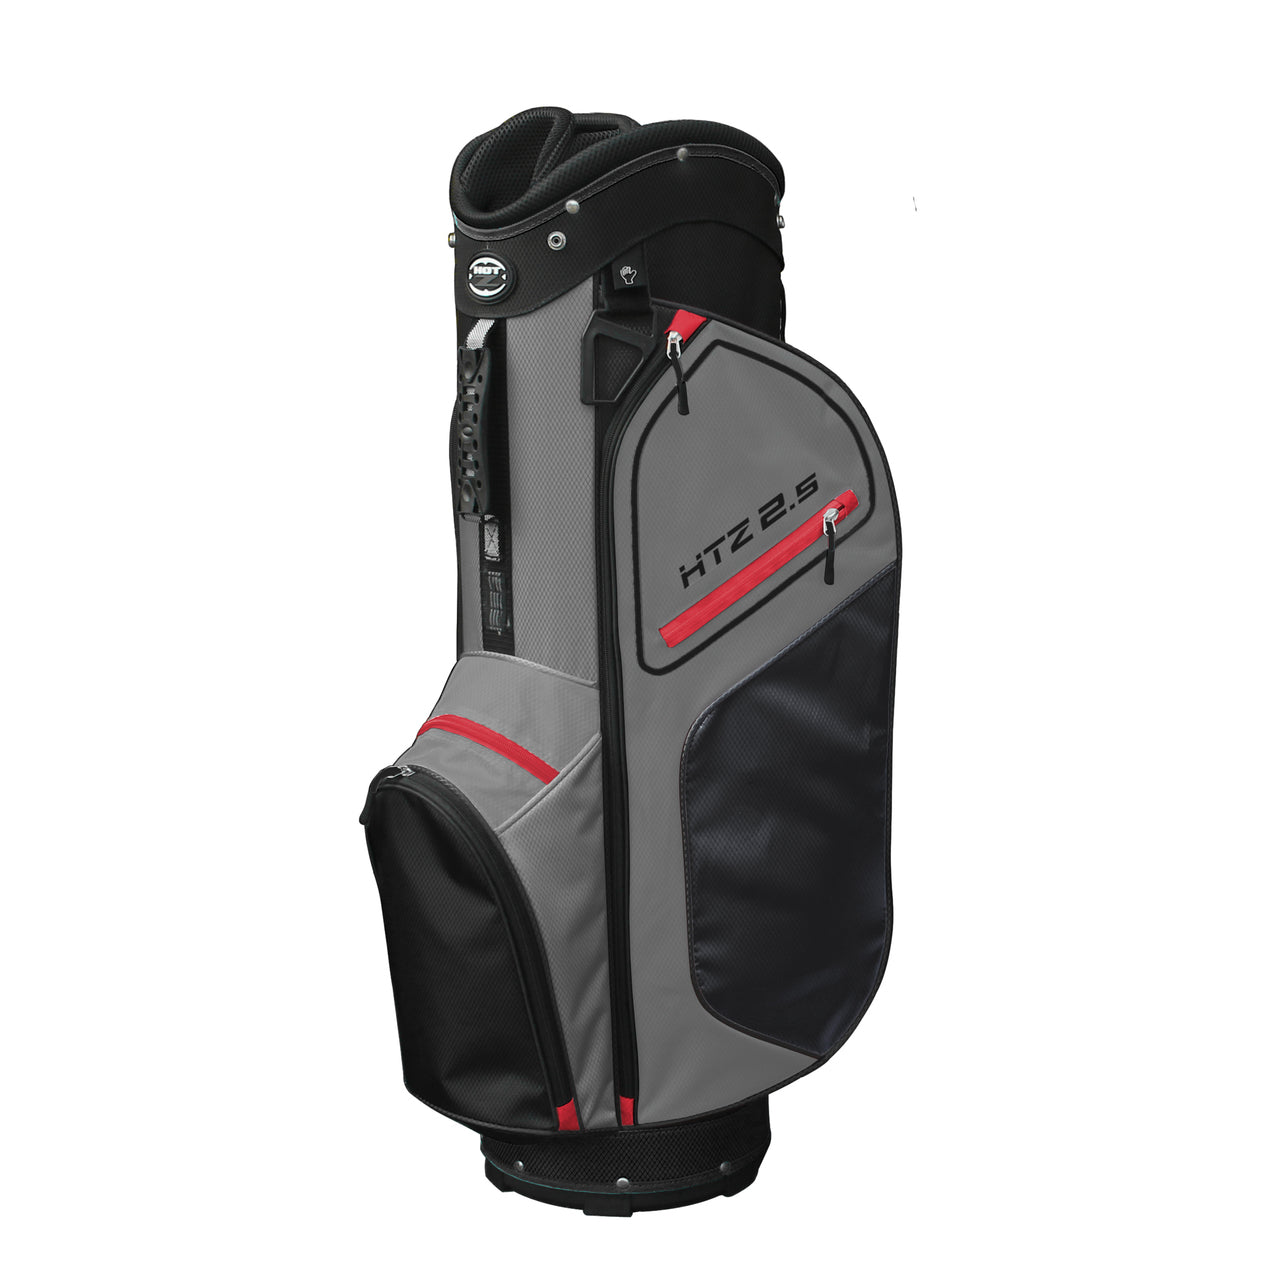 Hot-Z 2.5 Cart Bag